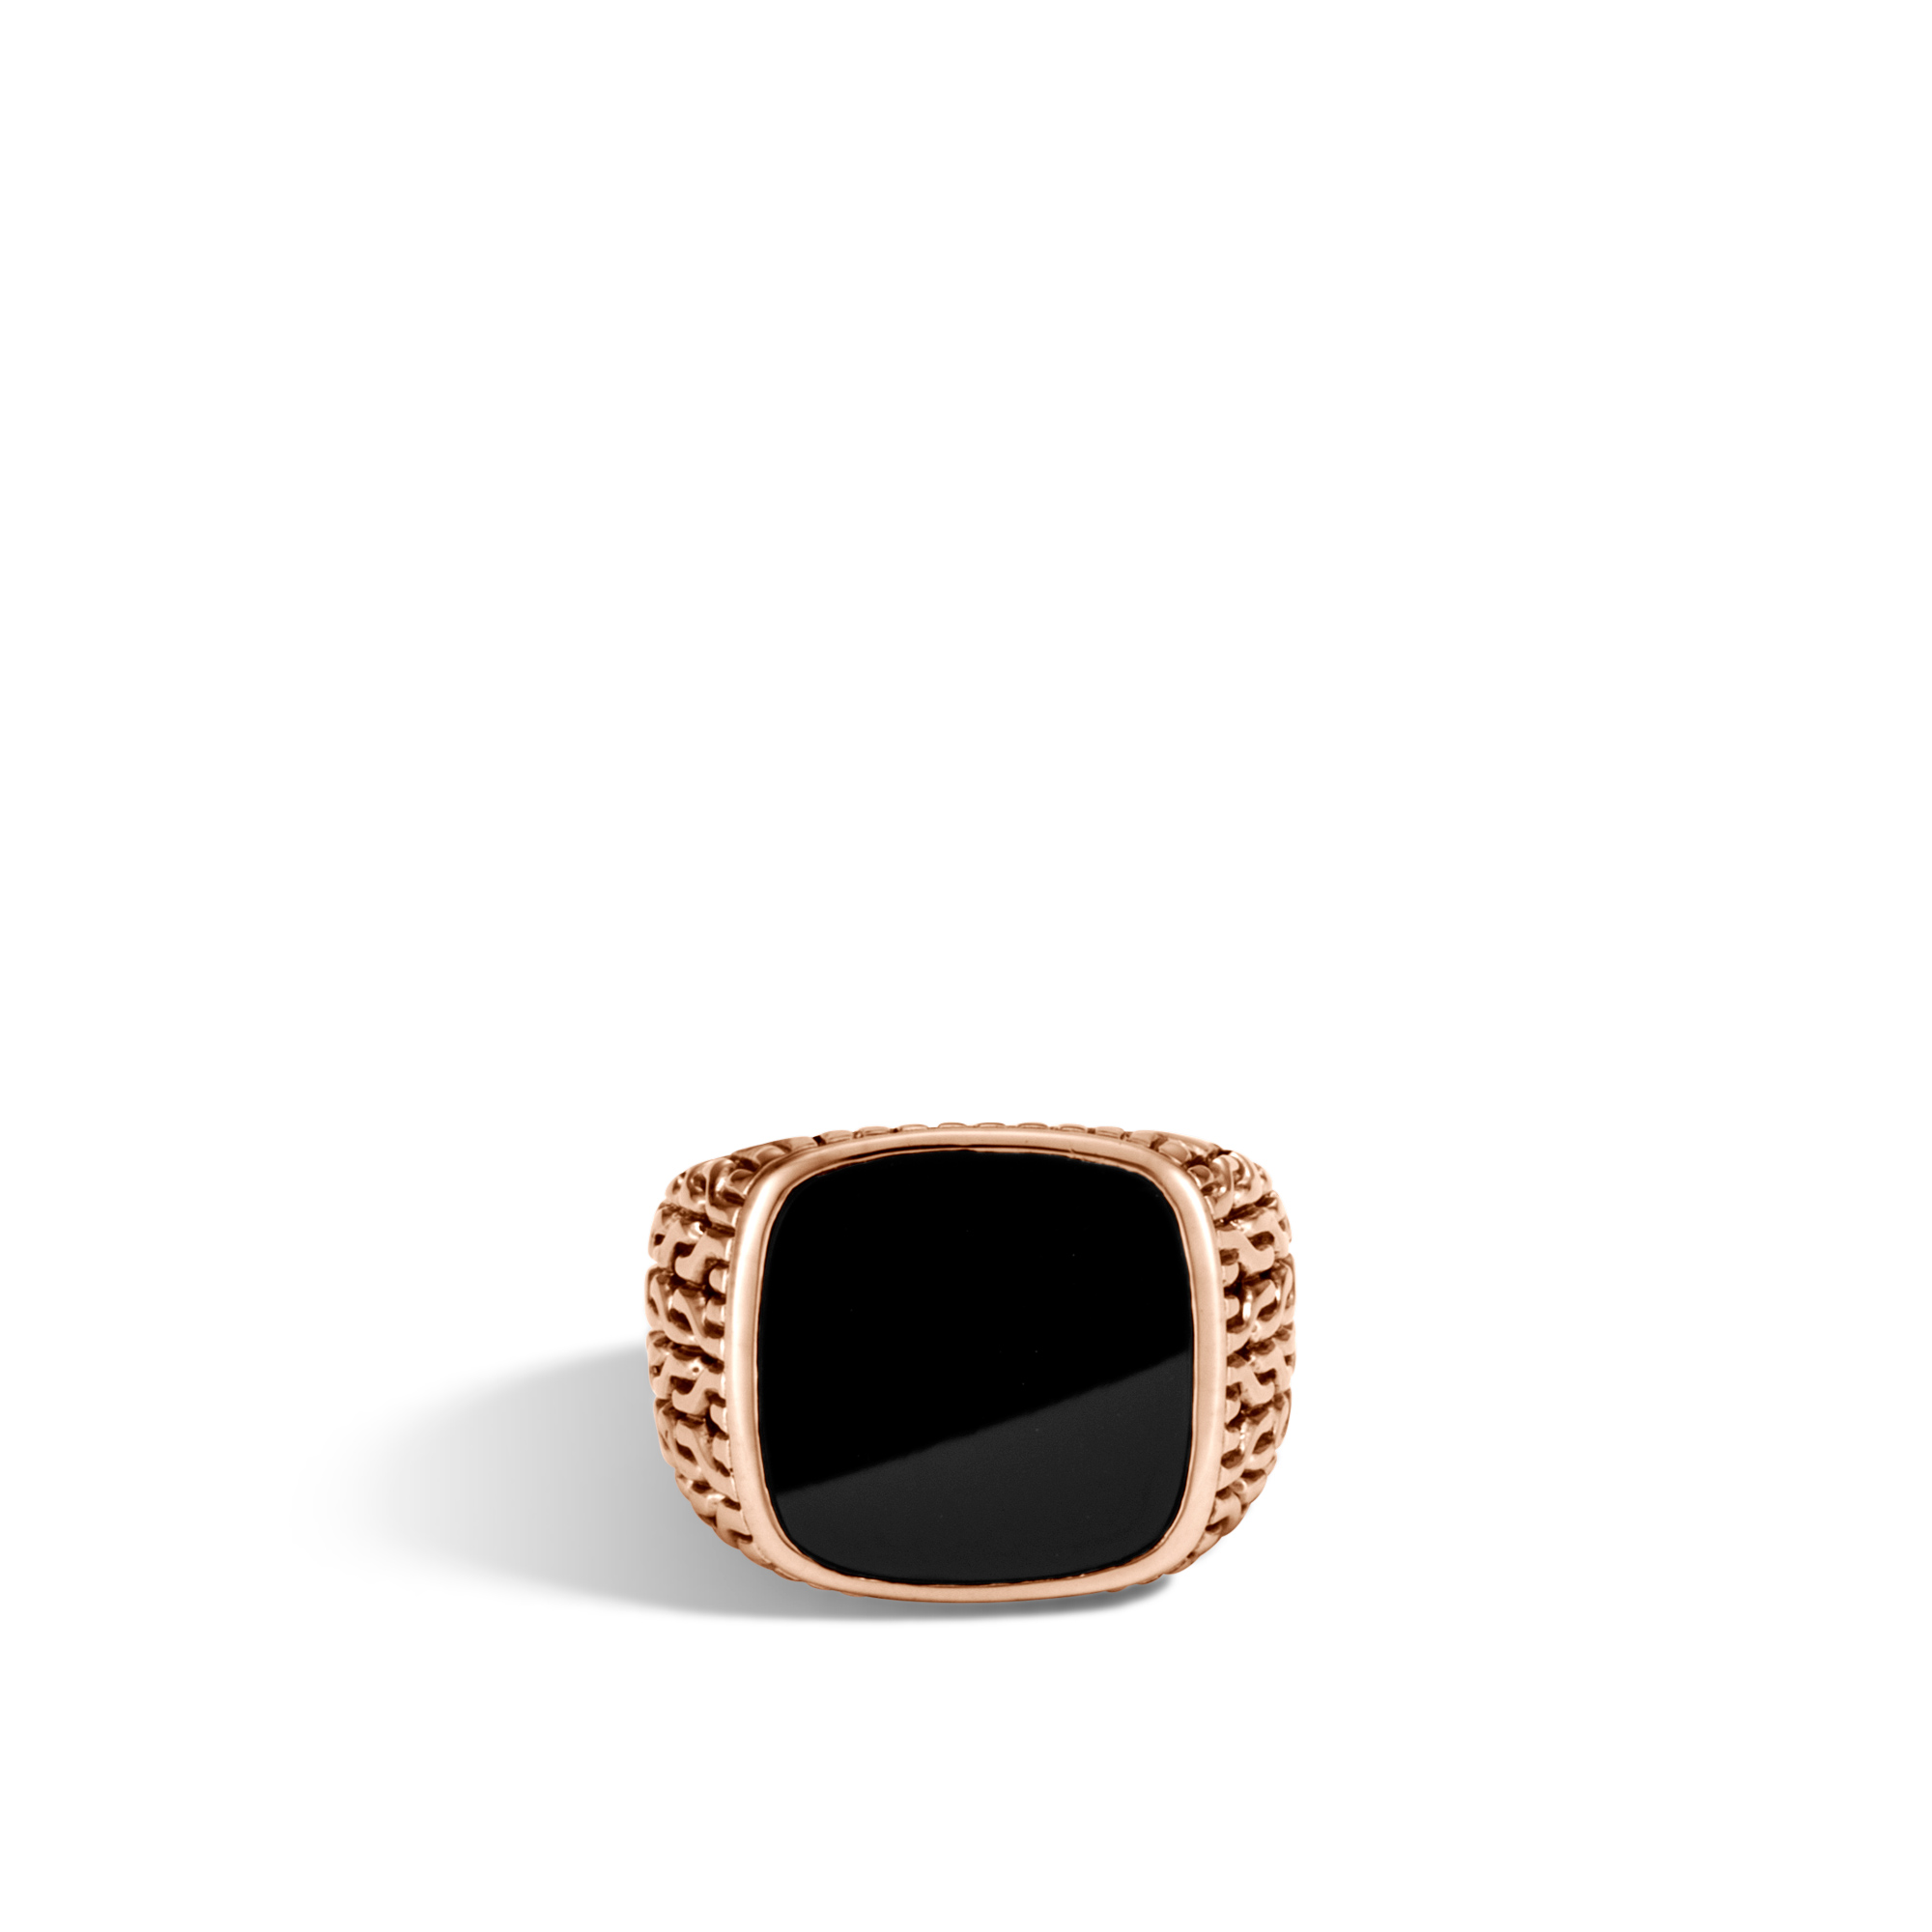 Classic Chain Signet Ring in Bronze with Gemstone, Black Onyx, large